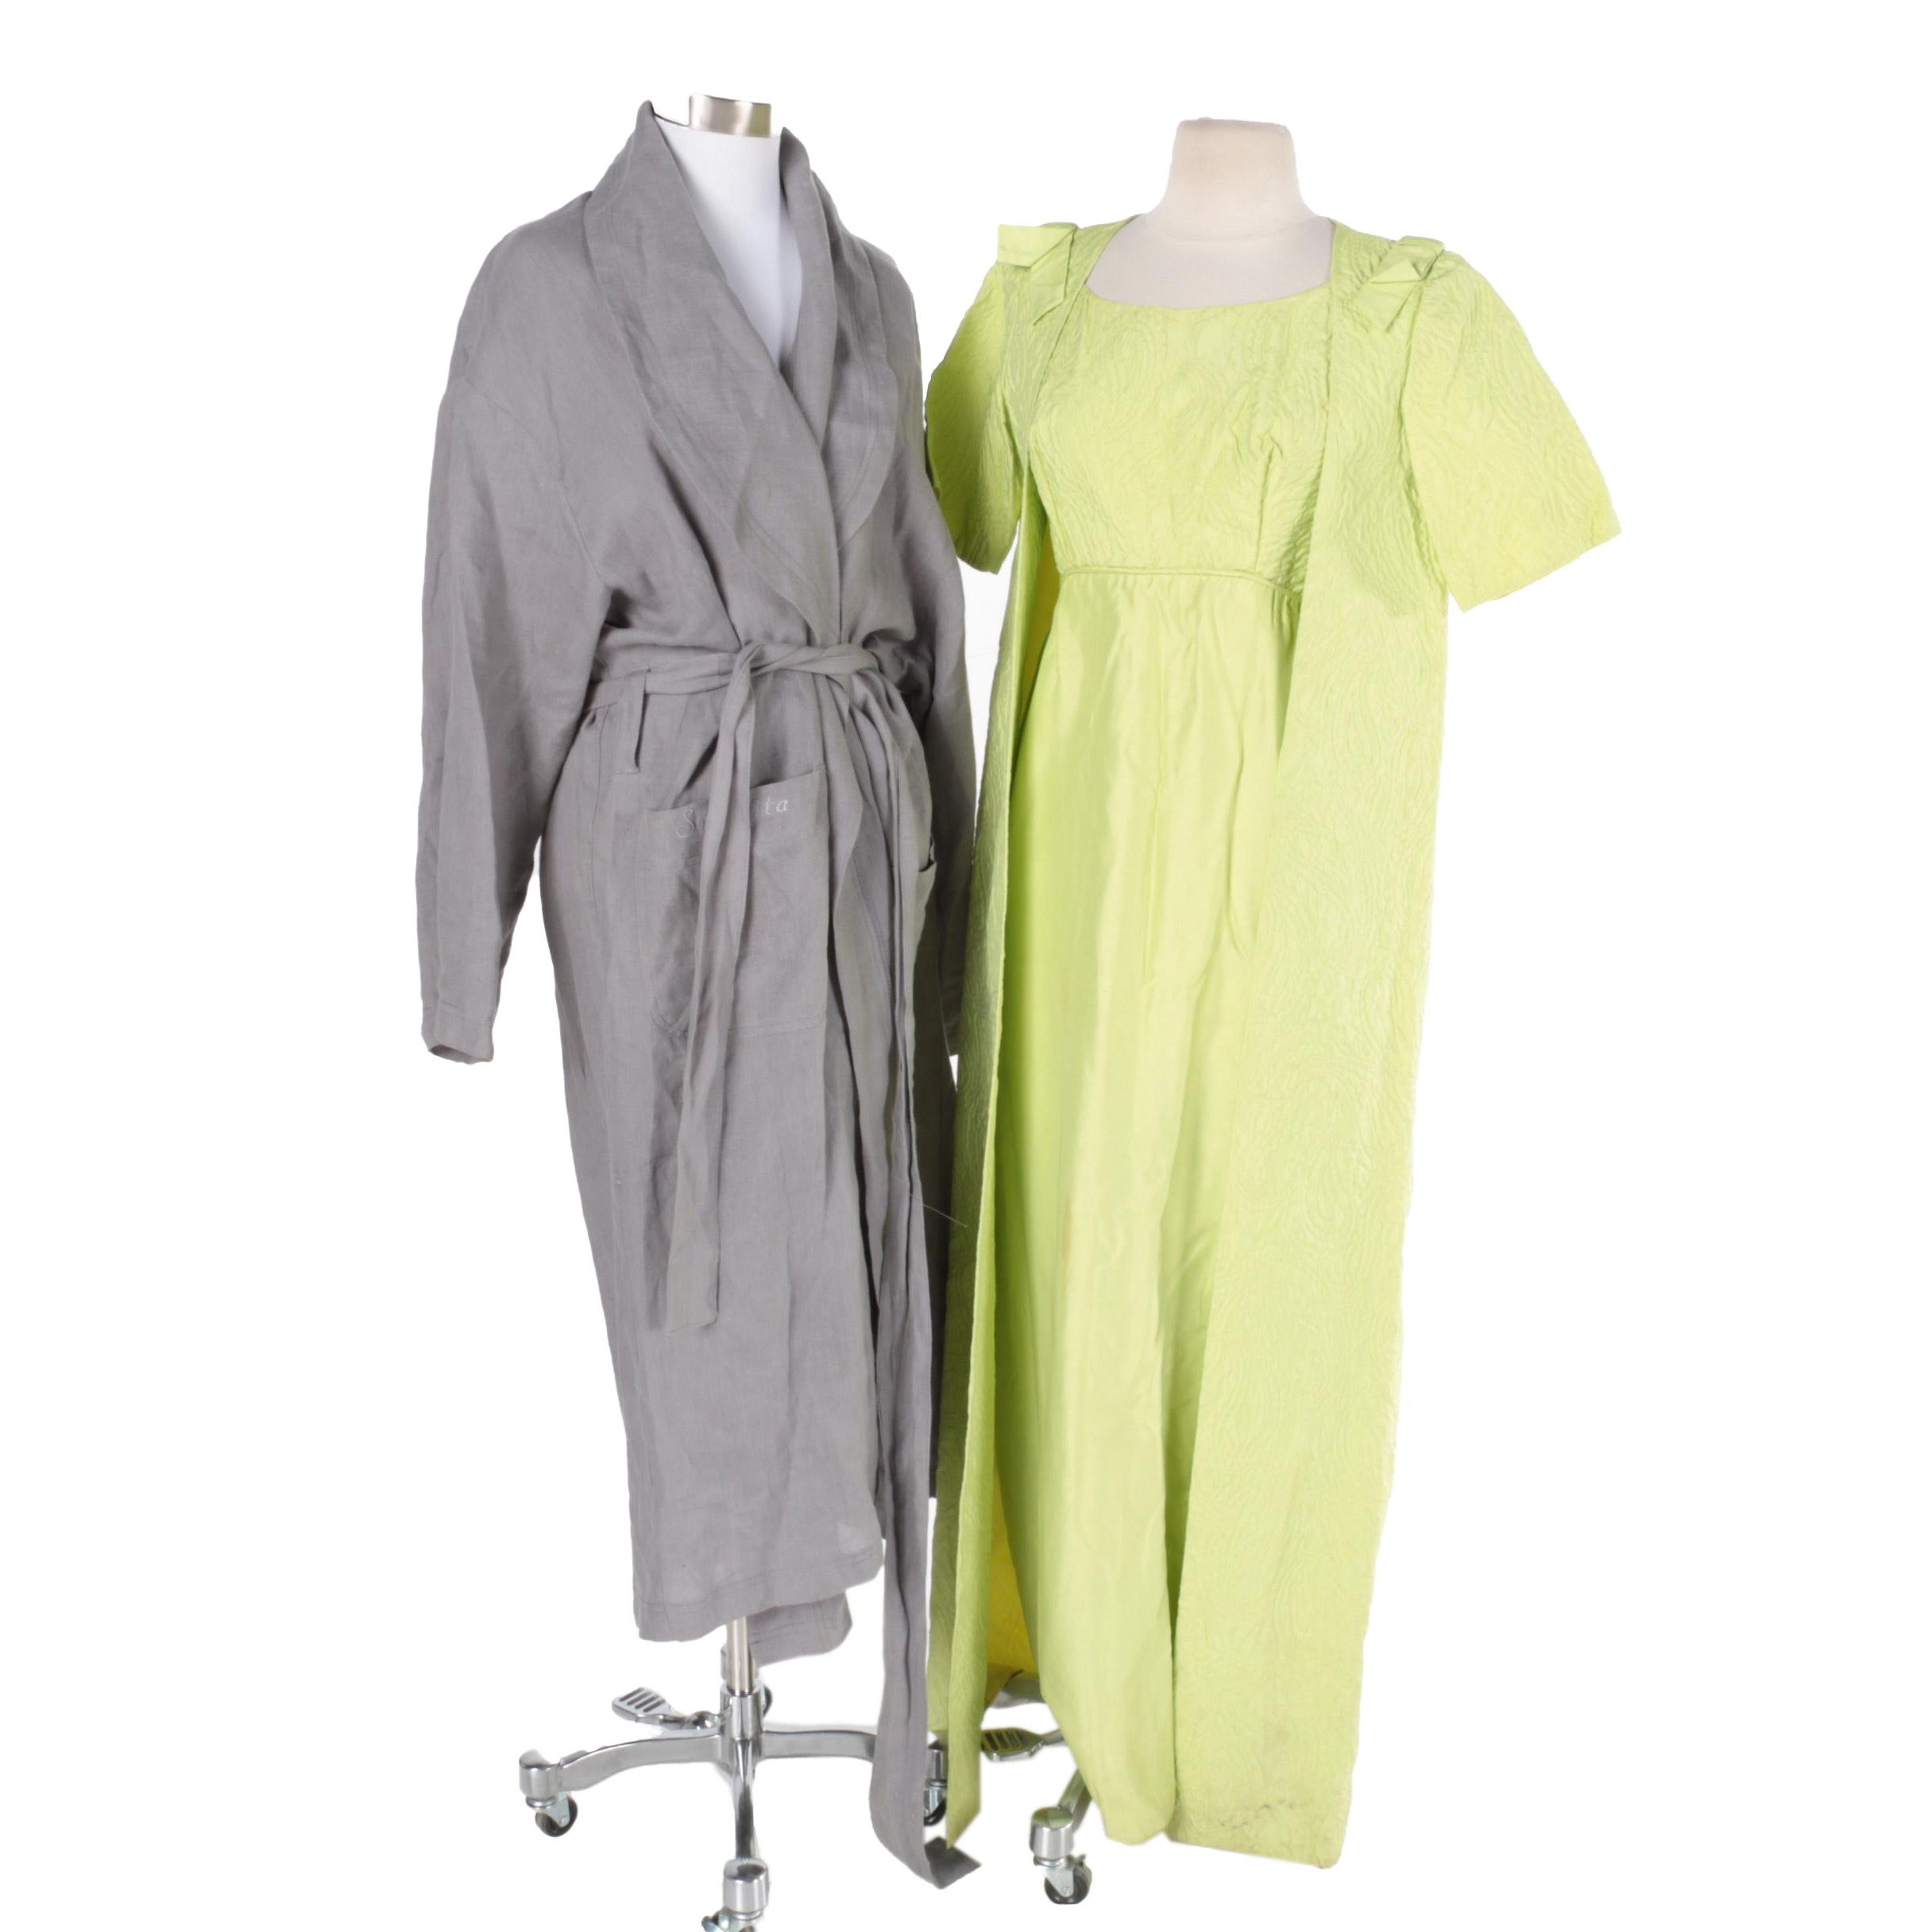 Vintage Sleeveless Dress with Matching Jacket and Spa Robe